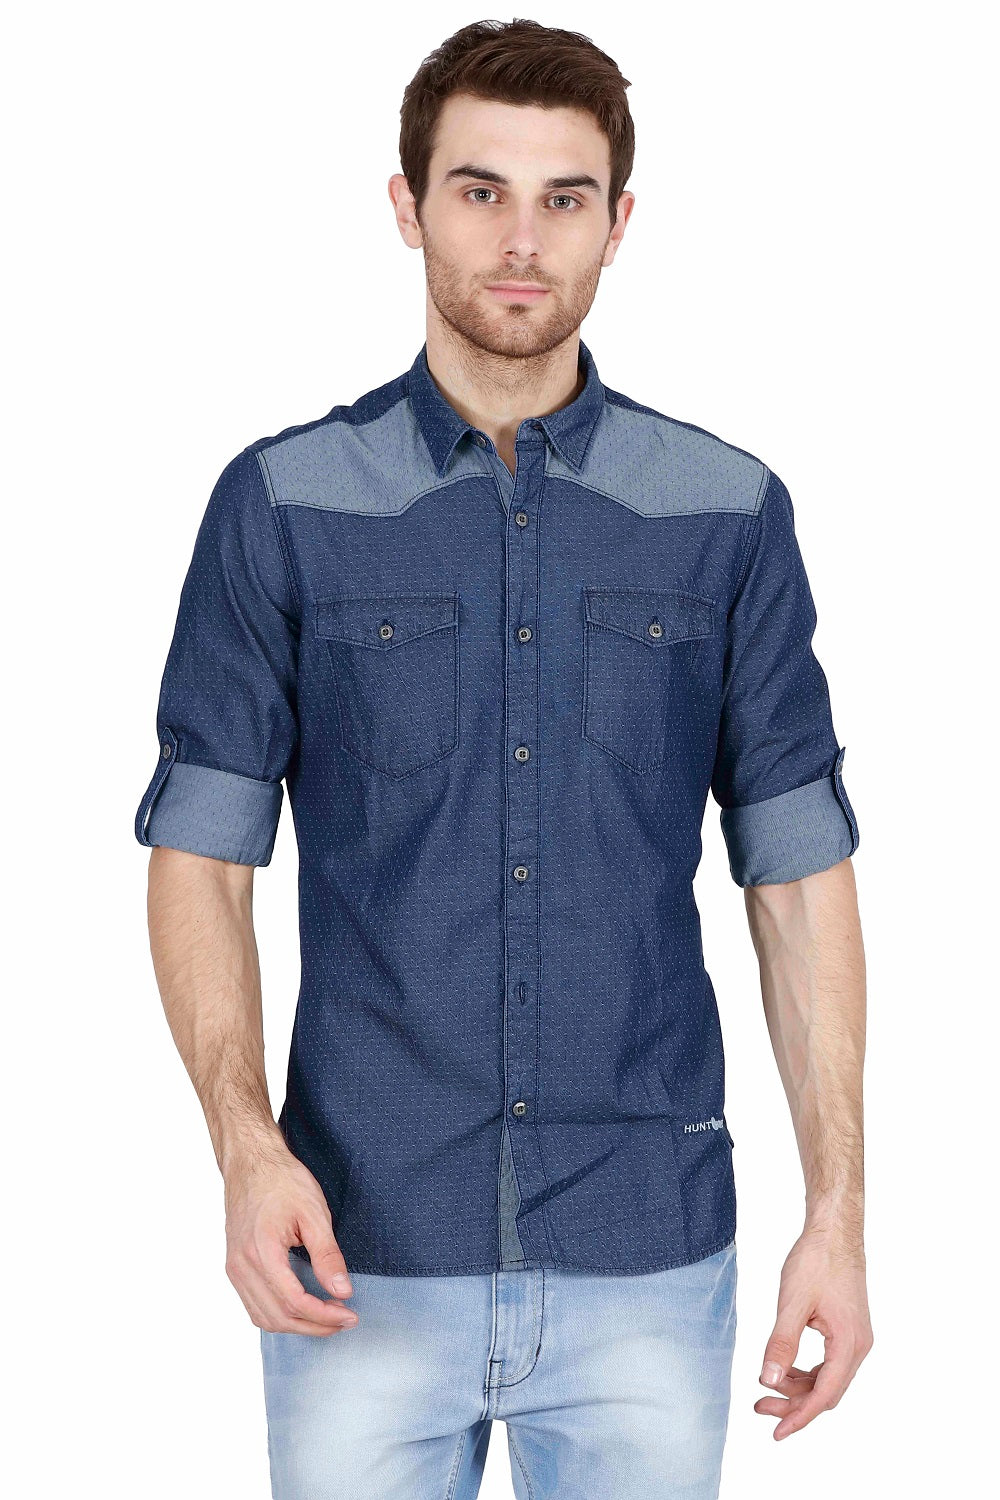 Hunt and Howe Men's Full Sleeve Denim Casual Shirt